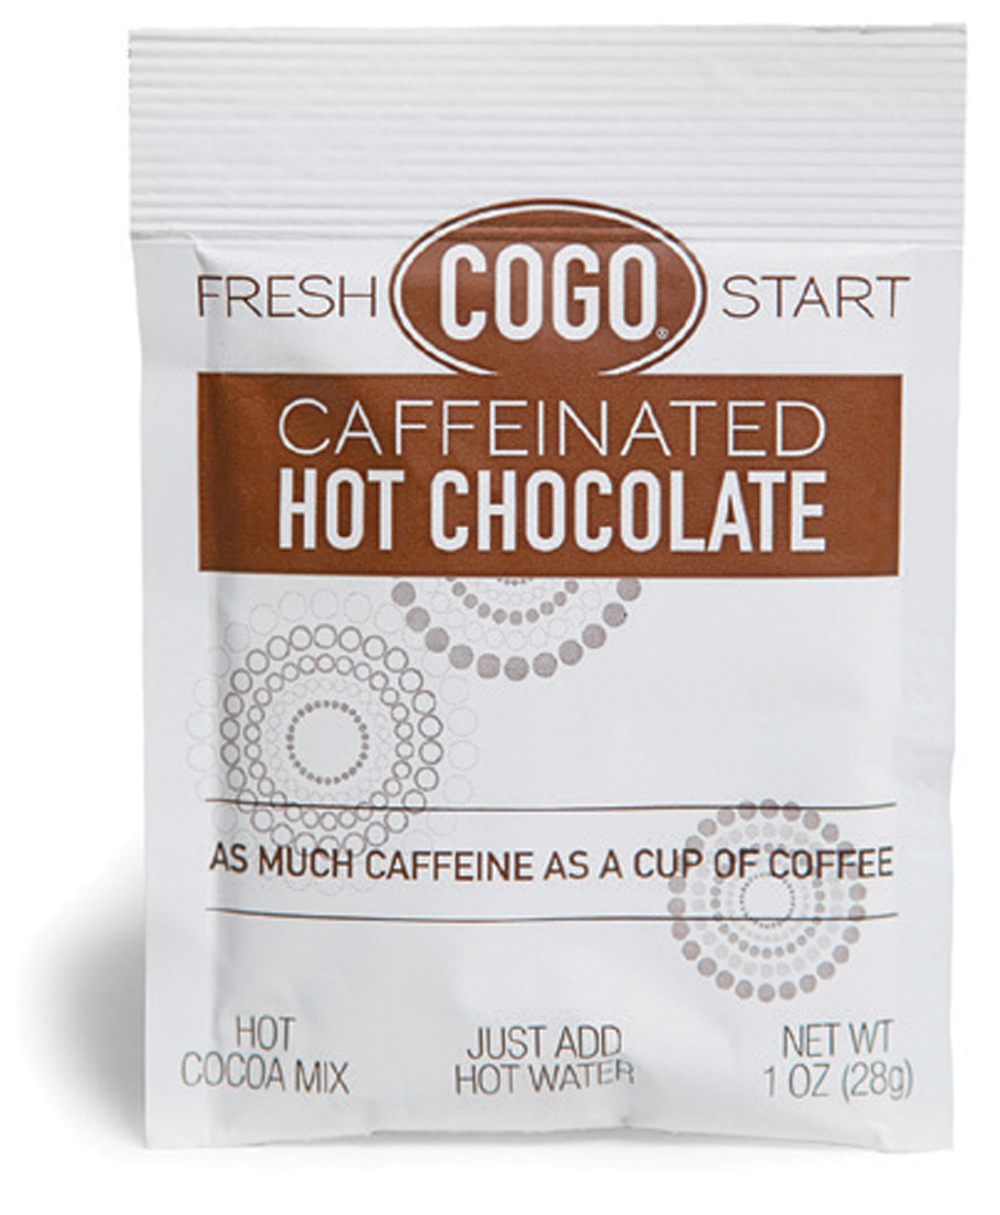 Twinwoods LLC Introduces COGO, a New Hot Chocolate Mix with as ...